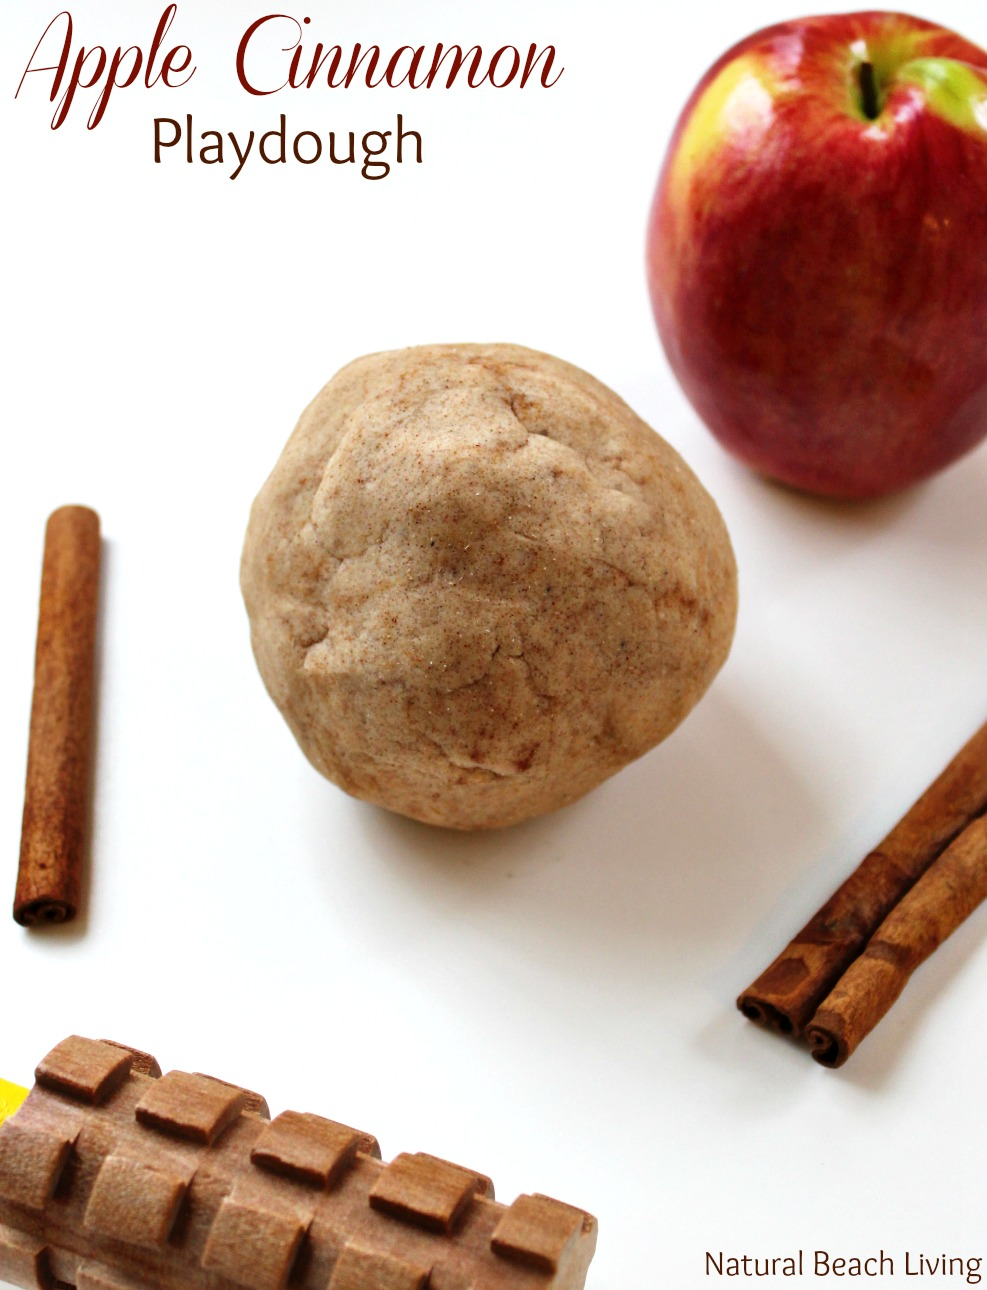 No Cook Natural Apple Cinnamon Playdough Recipe